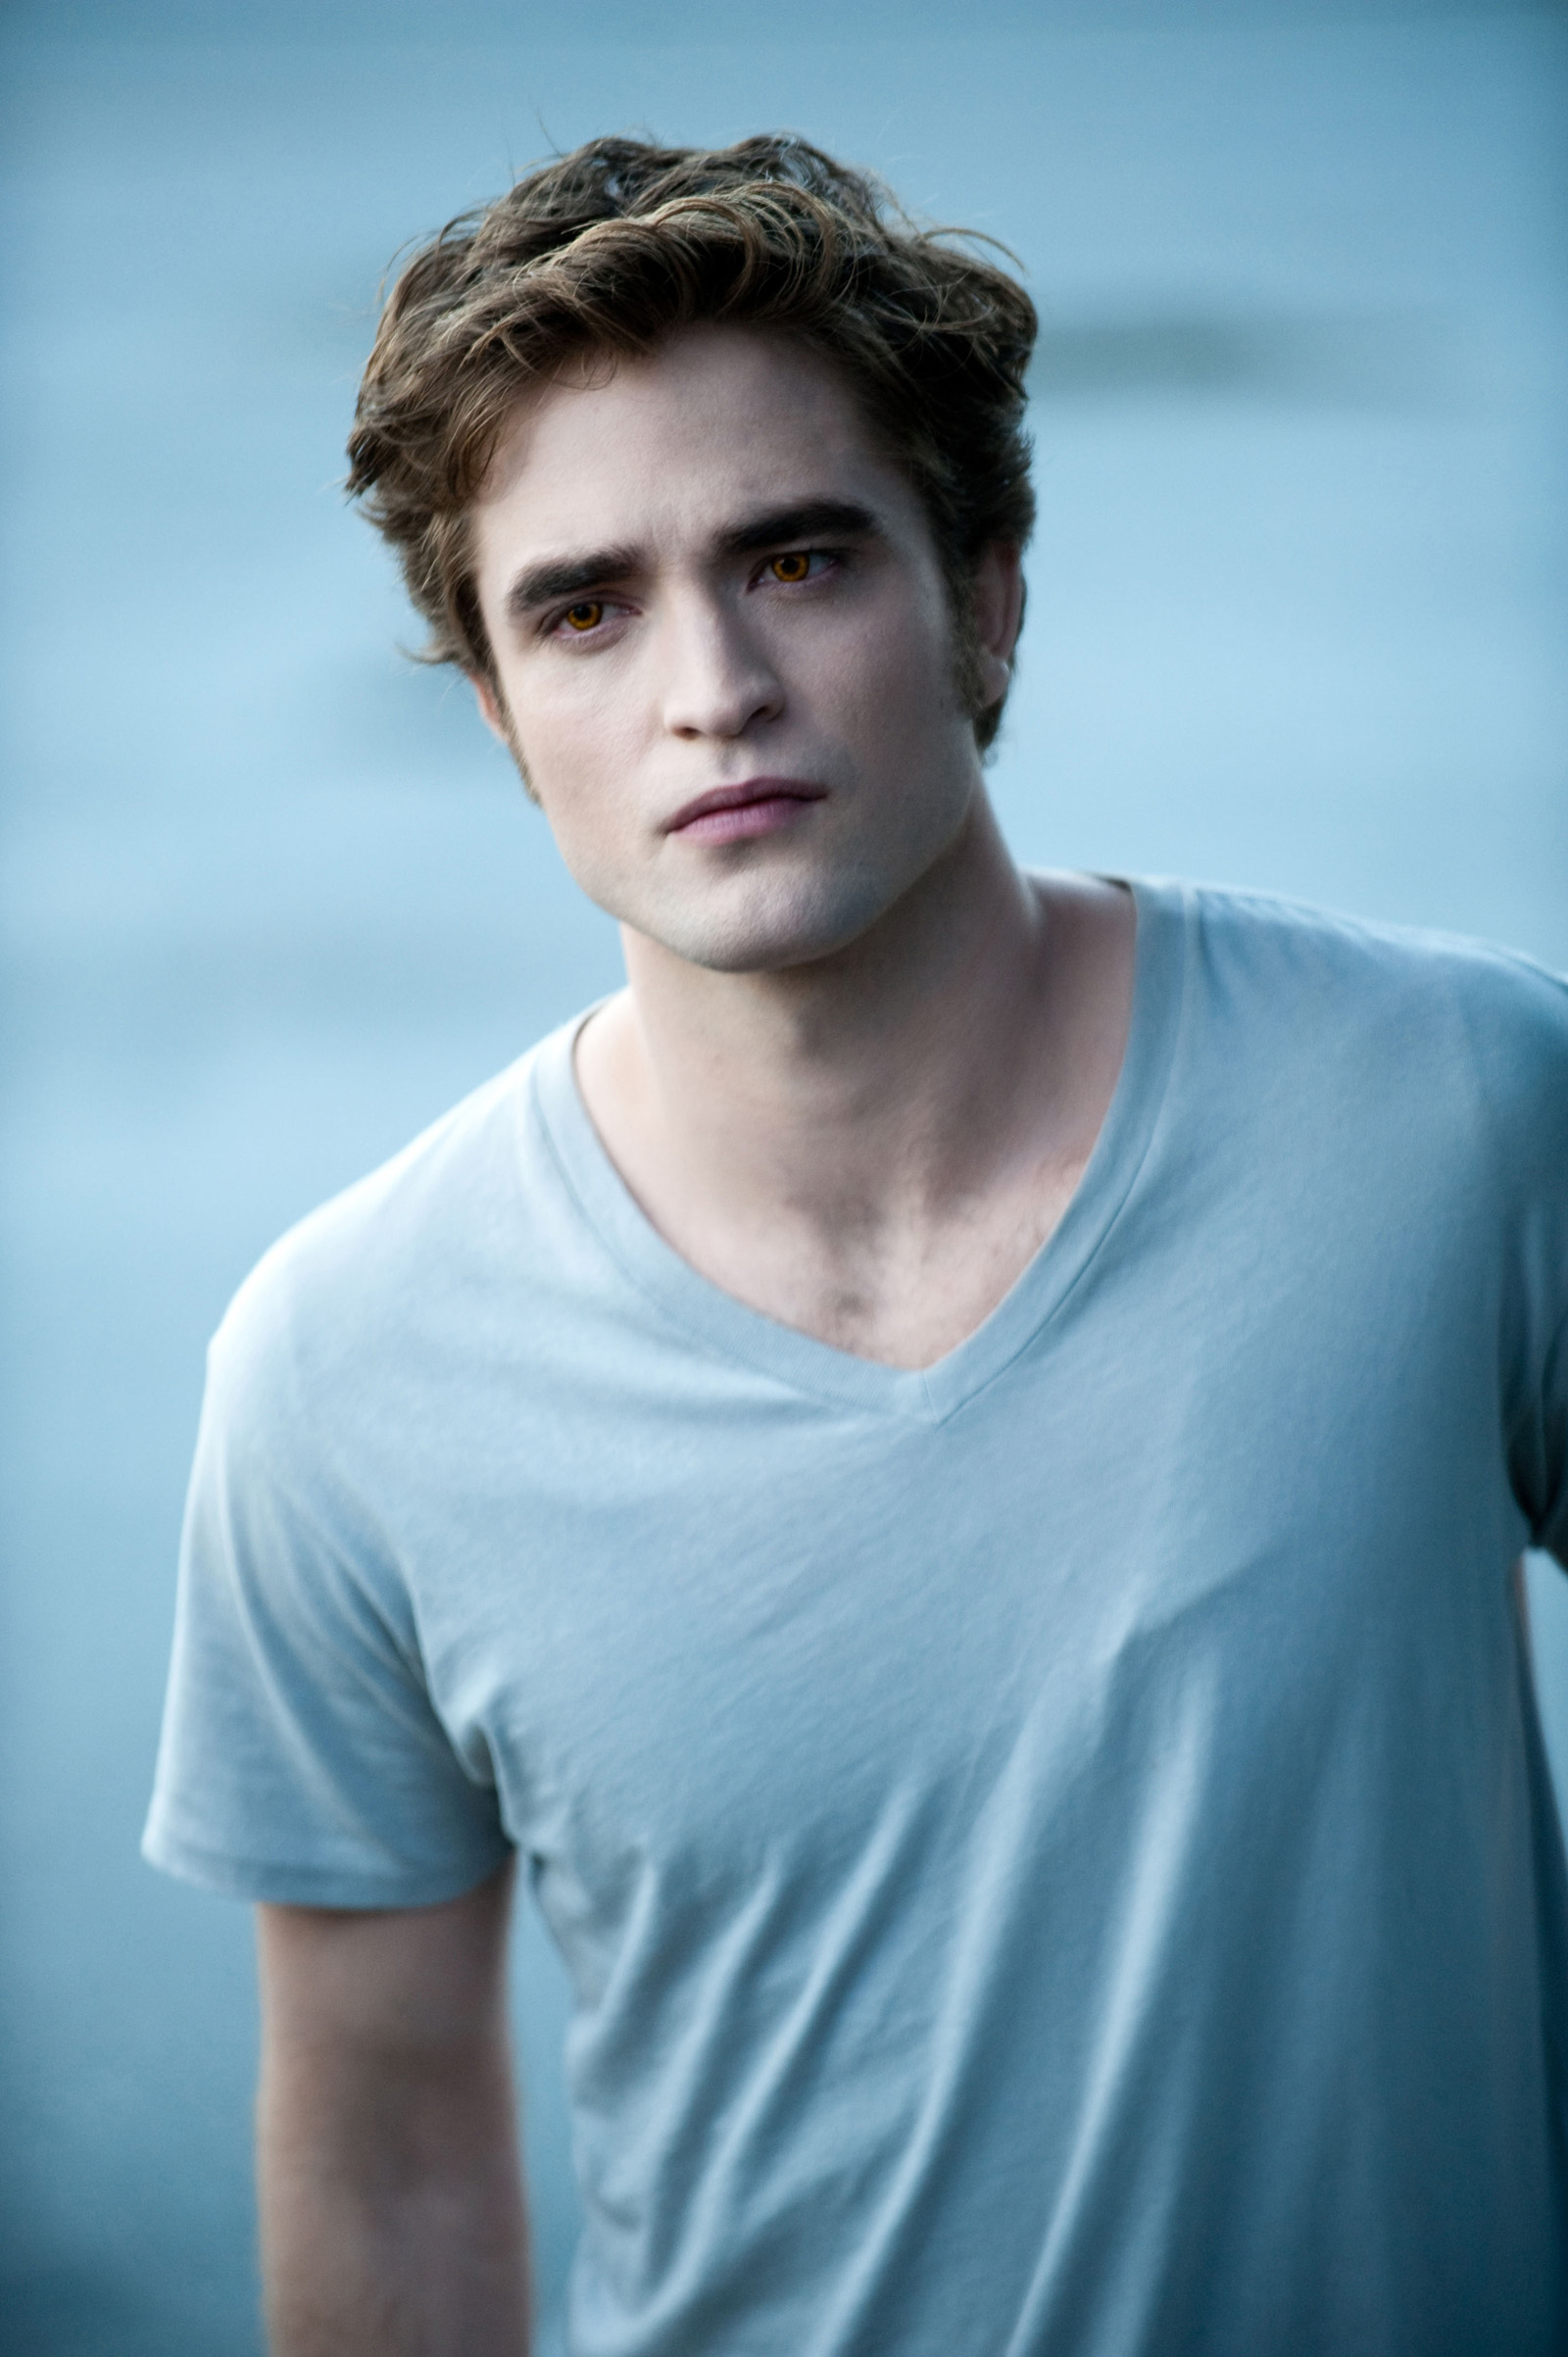 Edward cullen world of twilight Twilight edward photos